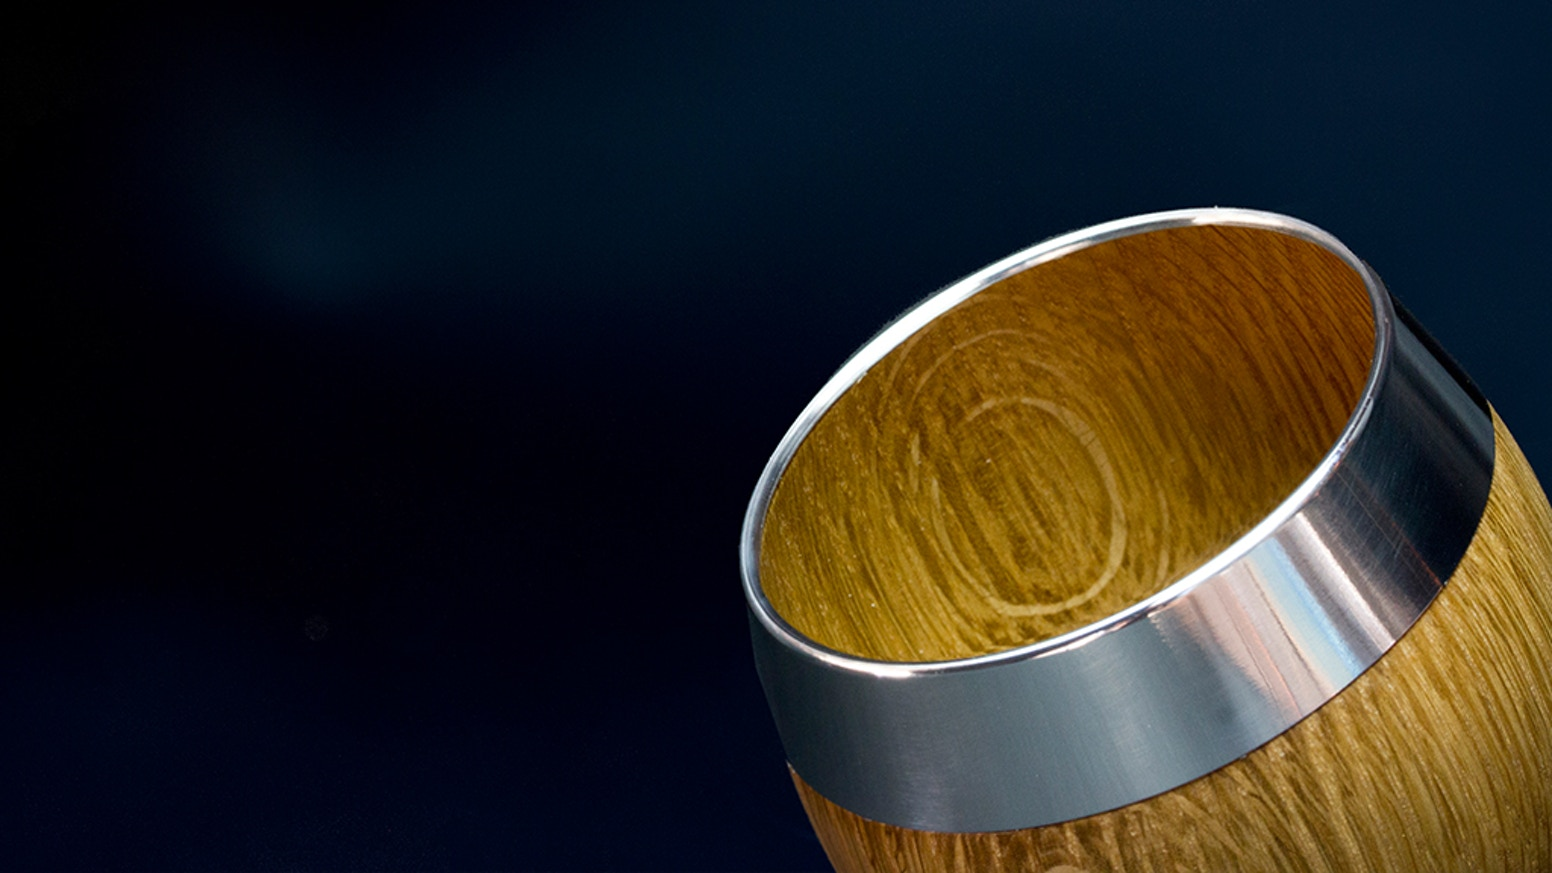 A beautiful handmade whisky tumbler with a one-piece oak body and stainless steel top, an exquisite drinking experience.